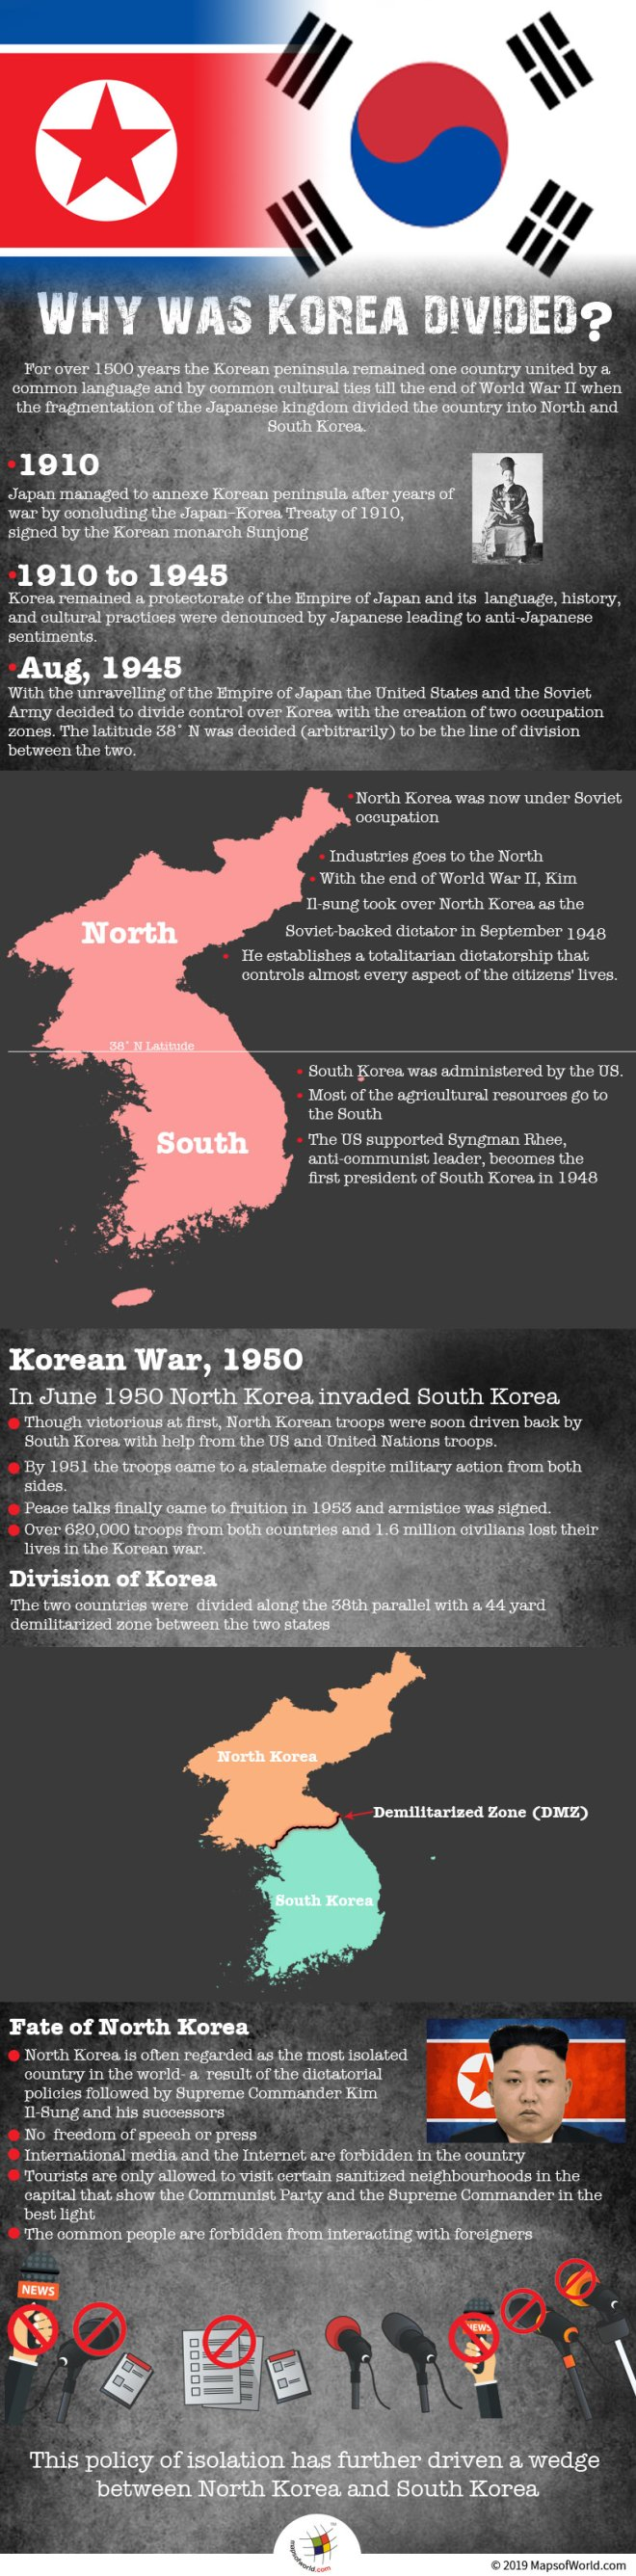 Infographic Giving Information on Division of Korea